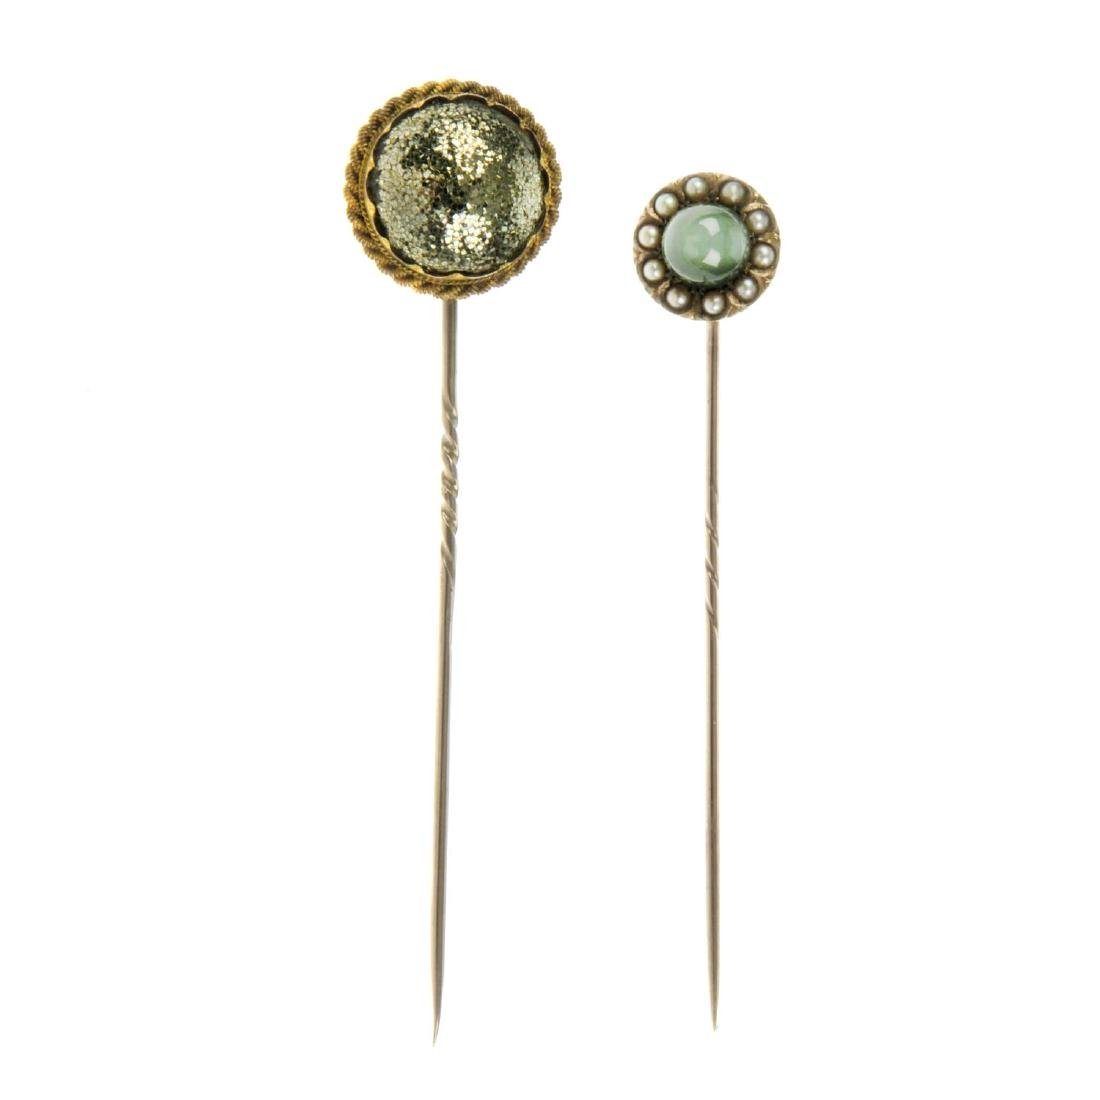 Two late Victorian gem stickpins. The first set with a